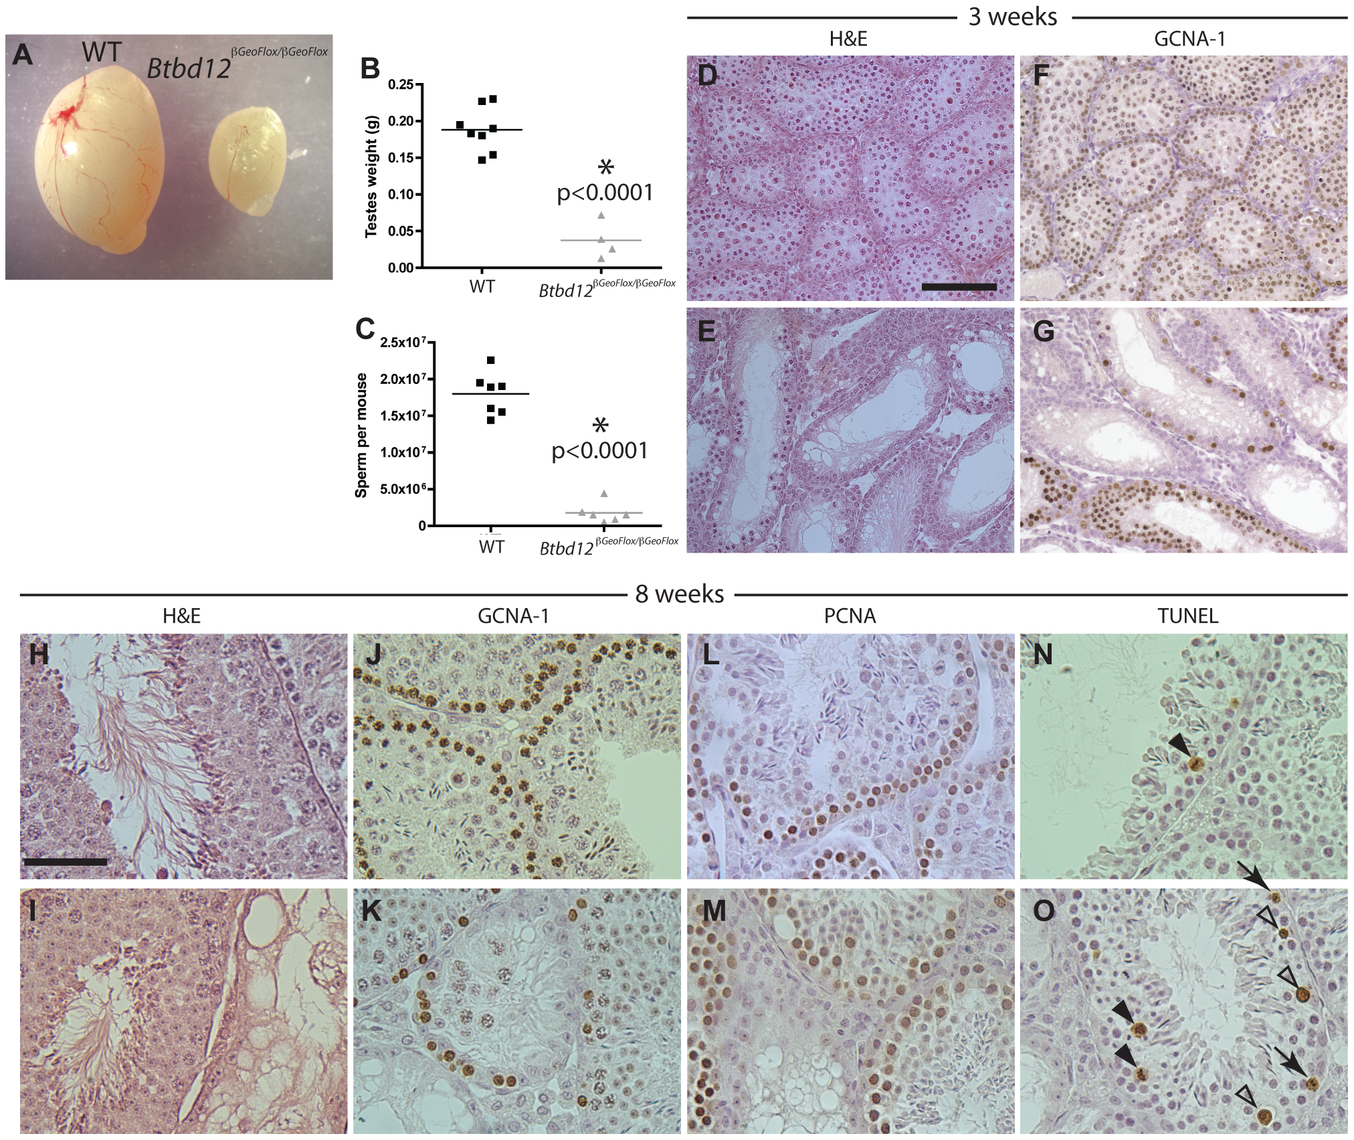 <i>Btbd12<sup>βGeoFlox/βGeoFlox</sup></i> mutants have reduced testicular germ cell proliferation.